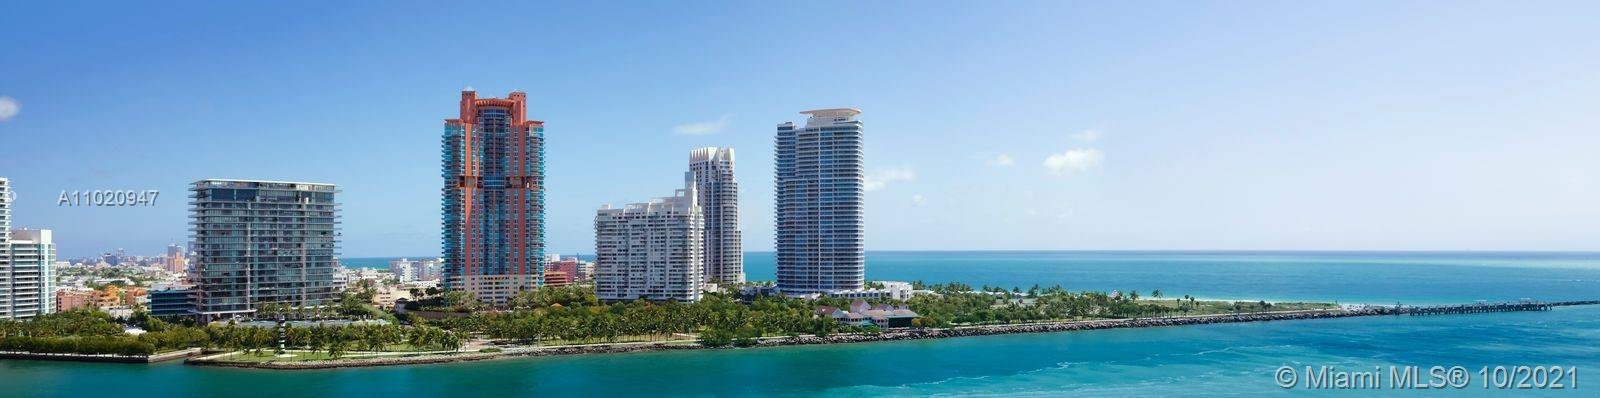 6800 Fisher Island #6803 PH-3